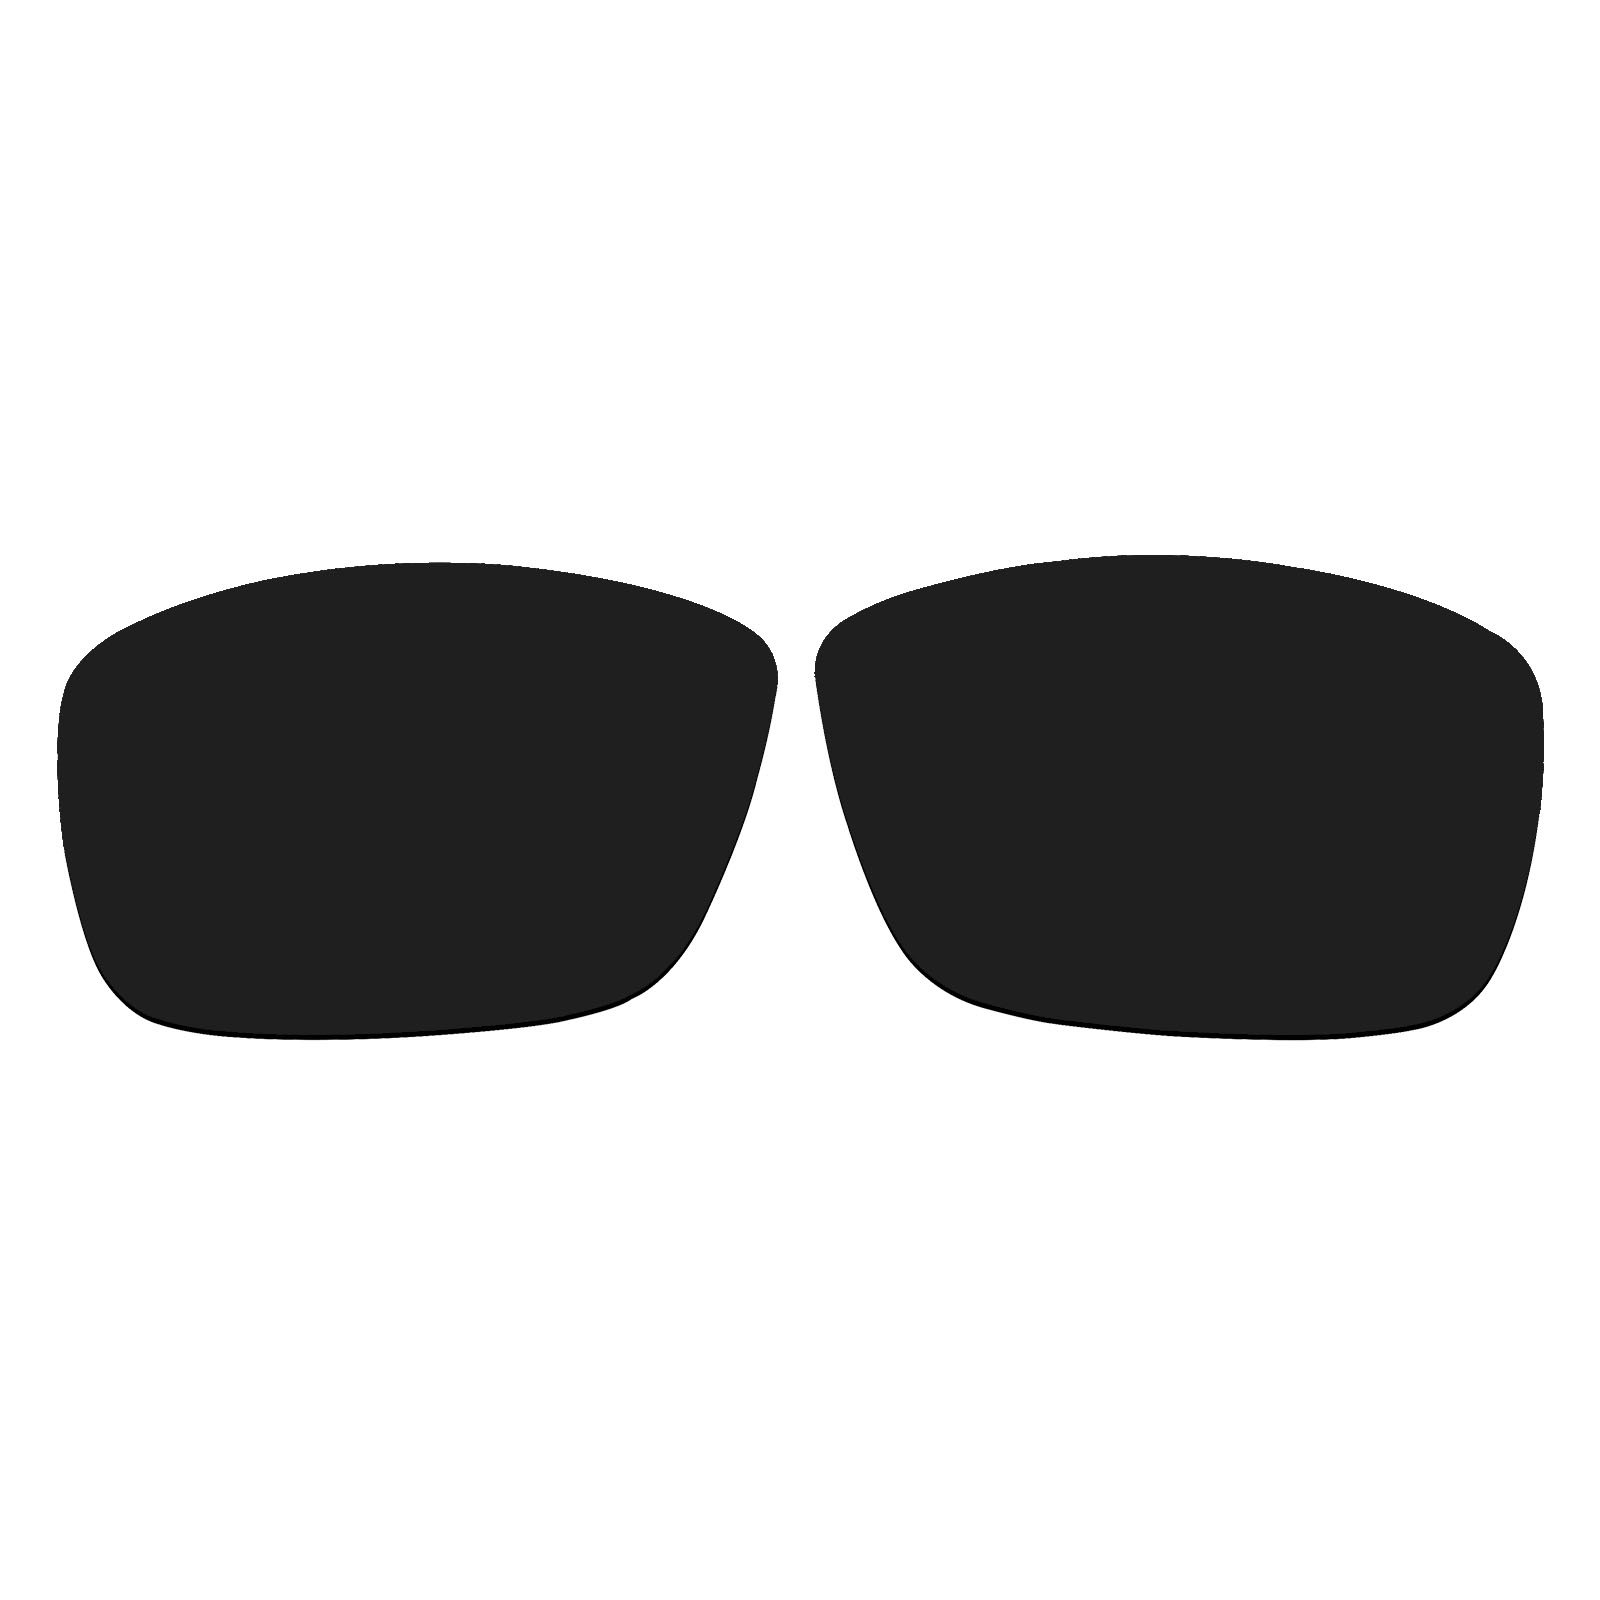 Polarized Replacement Sunglasses UV Lenses for Spy Optic Rocky- Black by oGeee